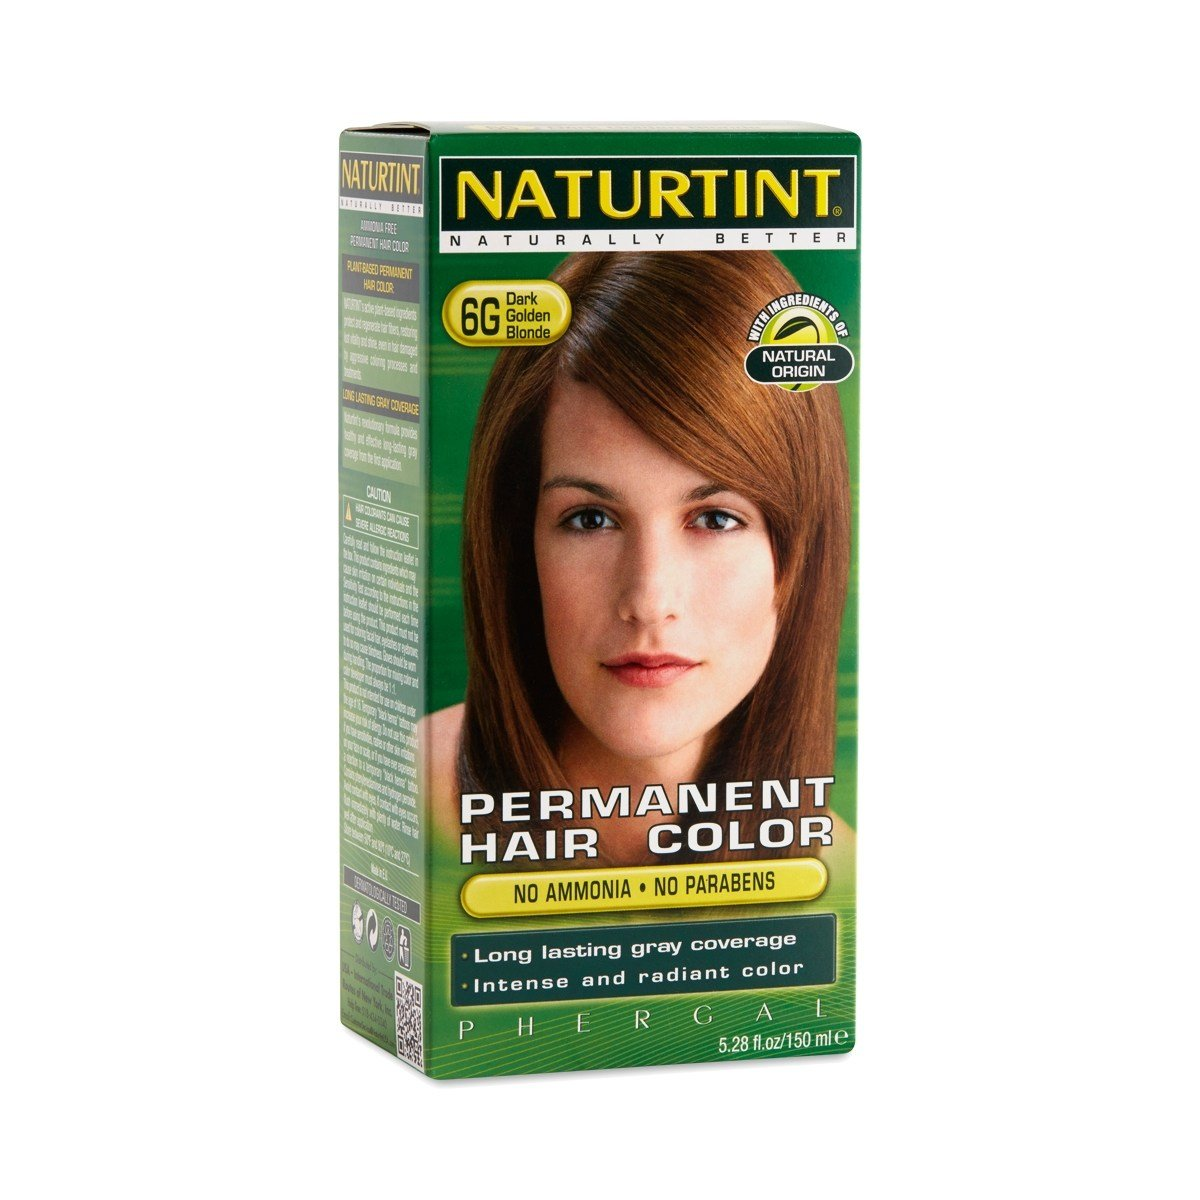 The Best Dark Golden Blonde 6G Permanent Hair Color By Naturtint Pictures